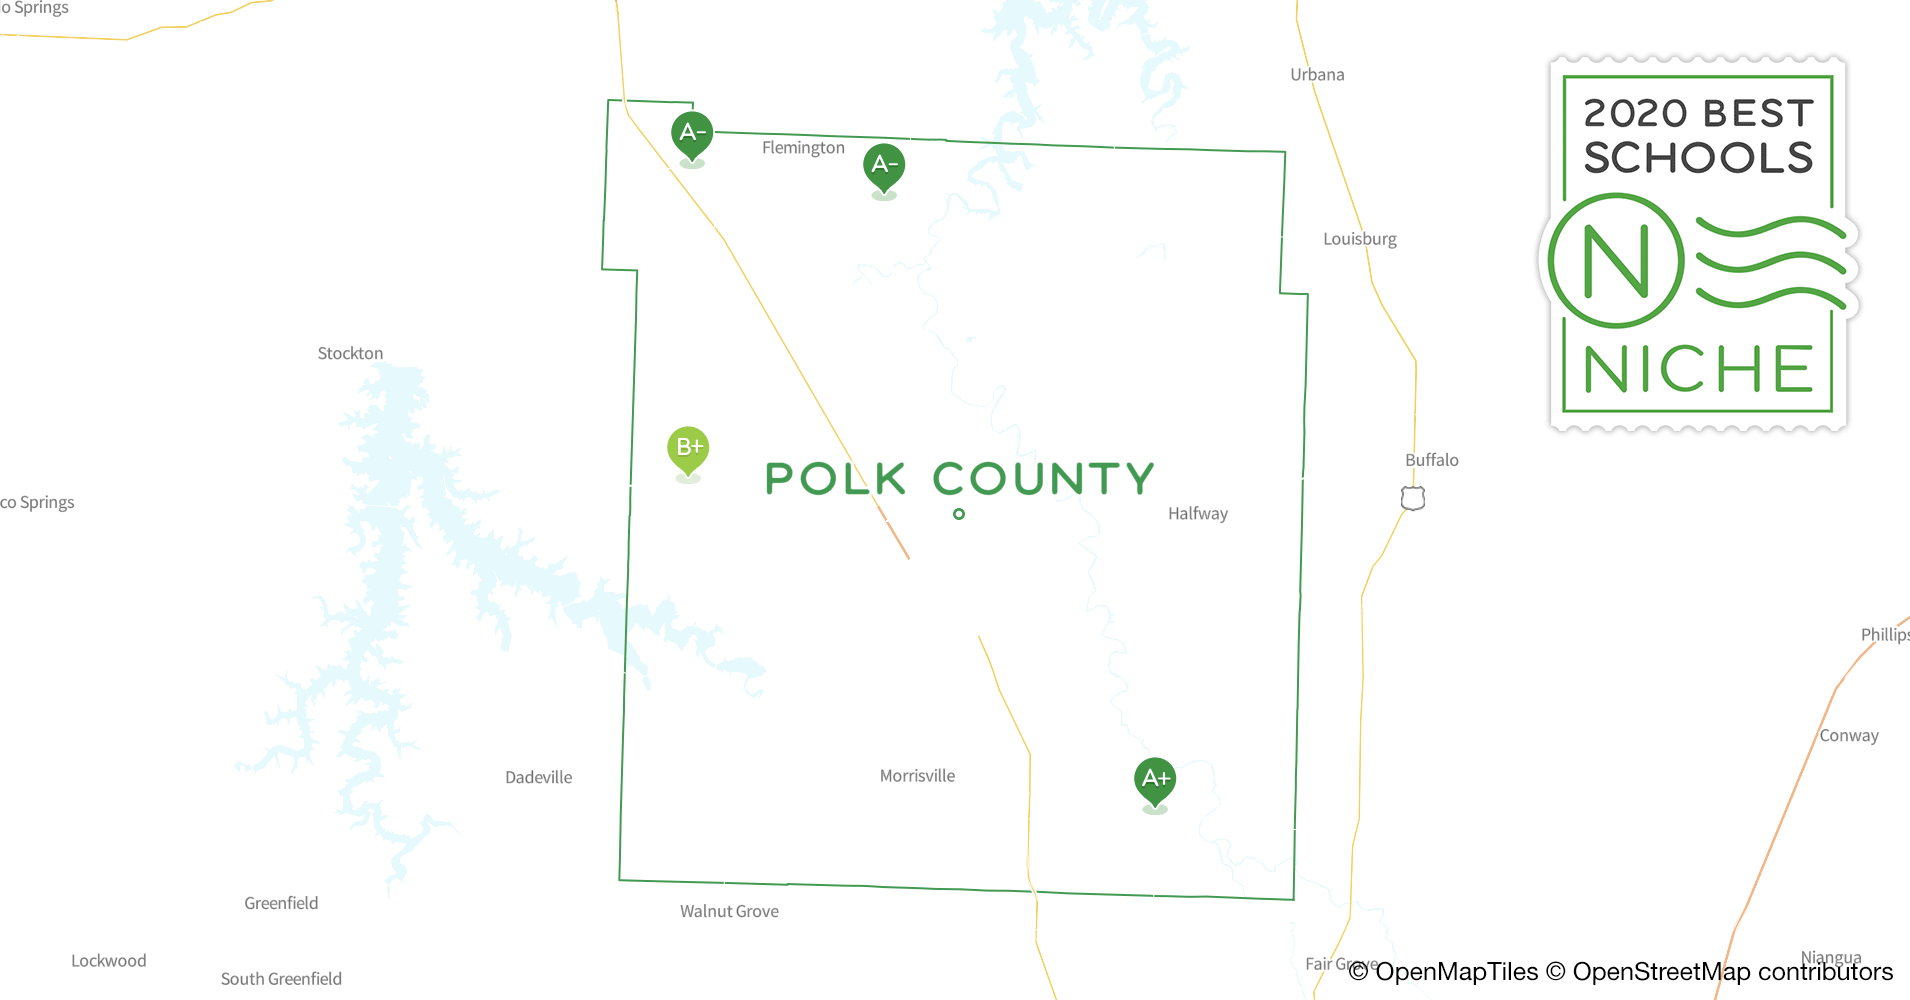 School Districts in Polk County, MO - Niche